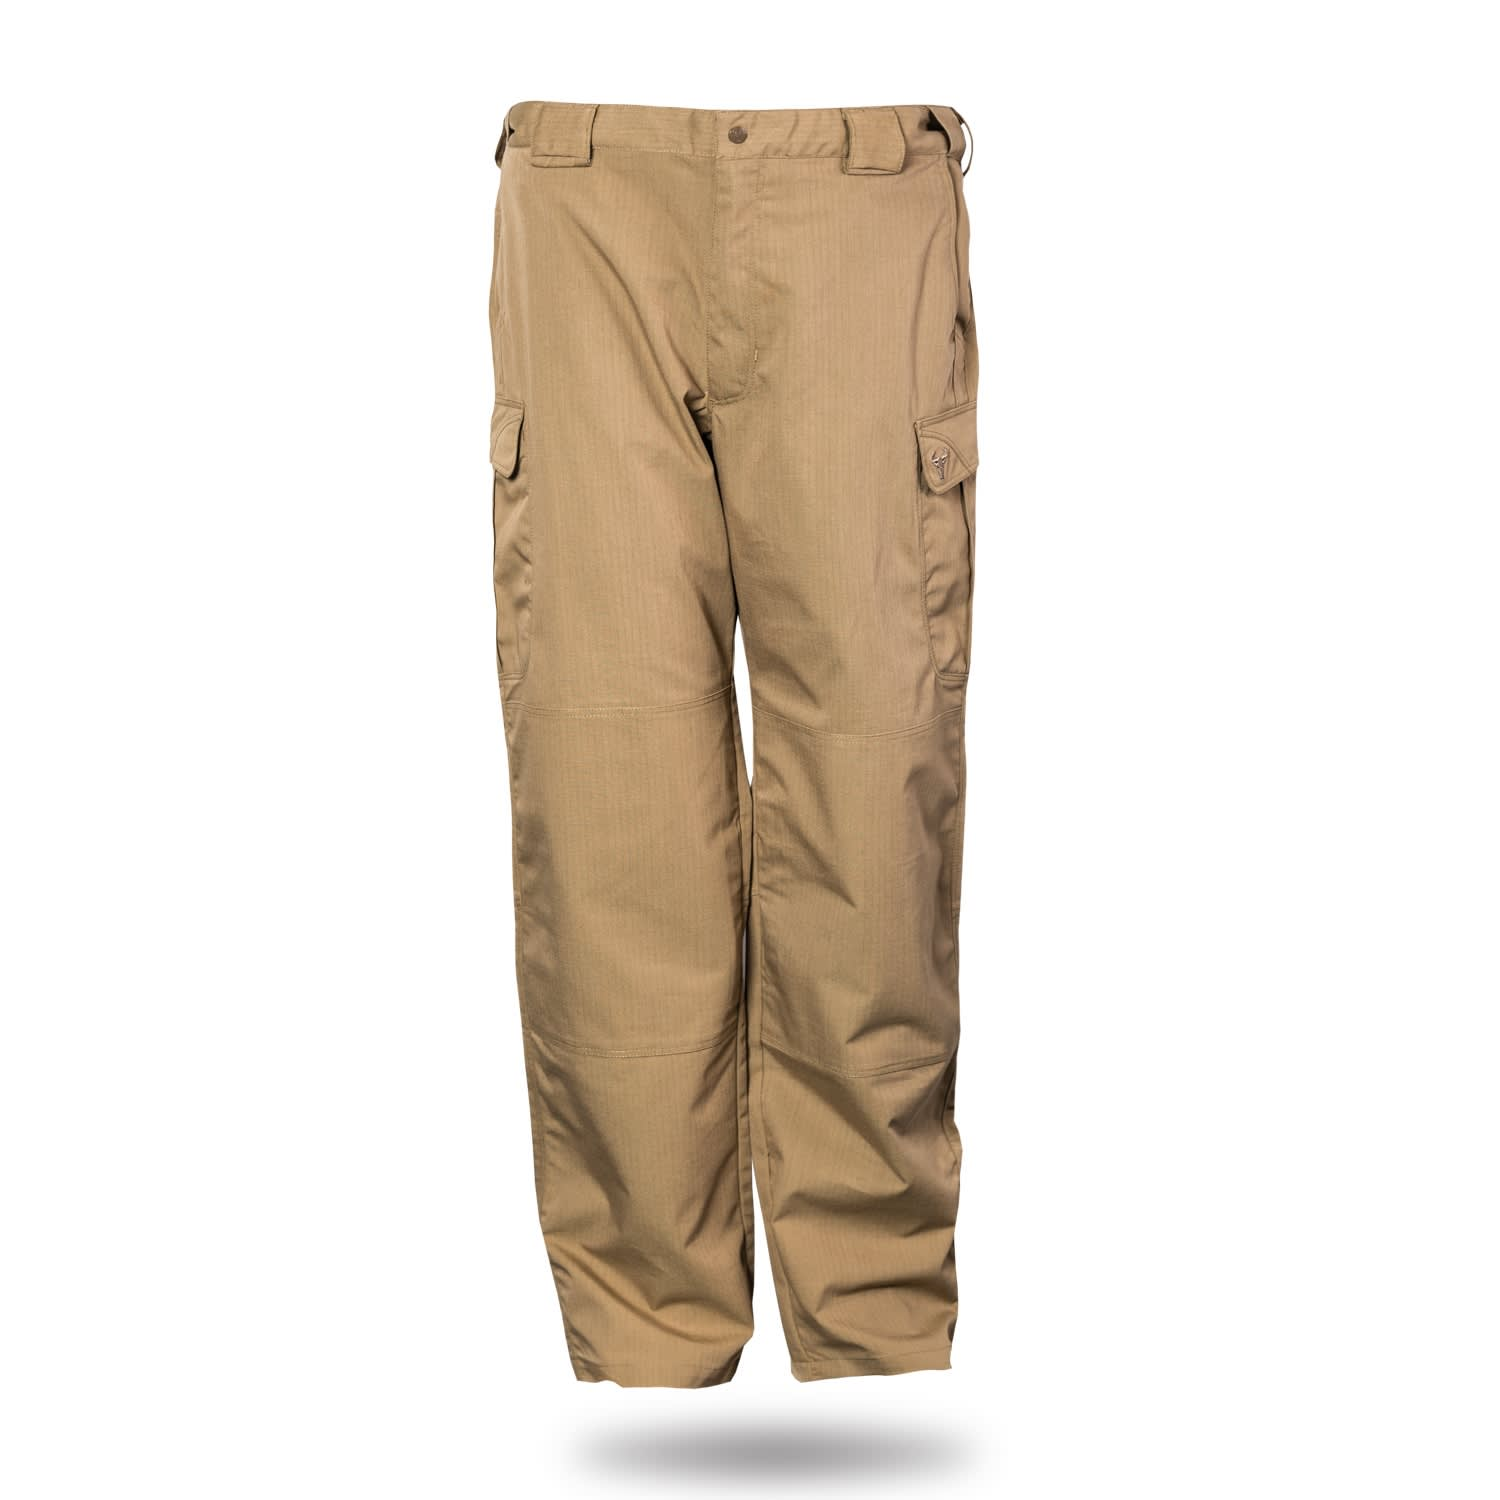 Wildebeest Men's Cargo Tactical Pants